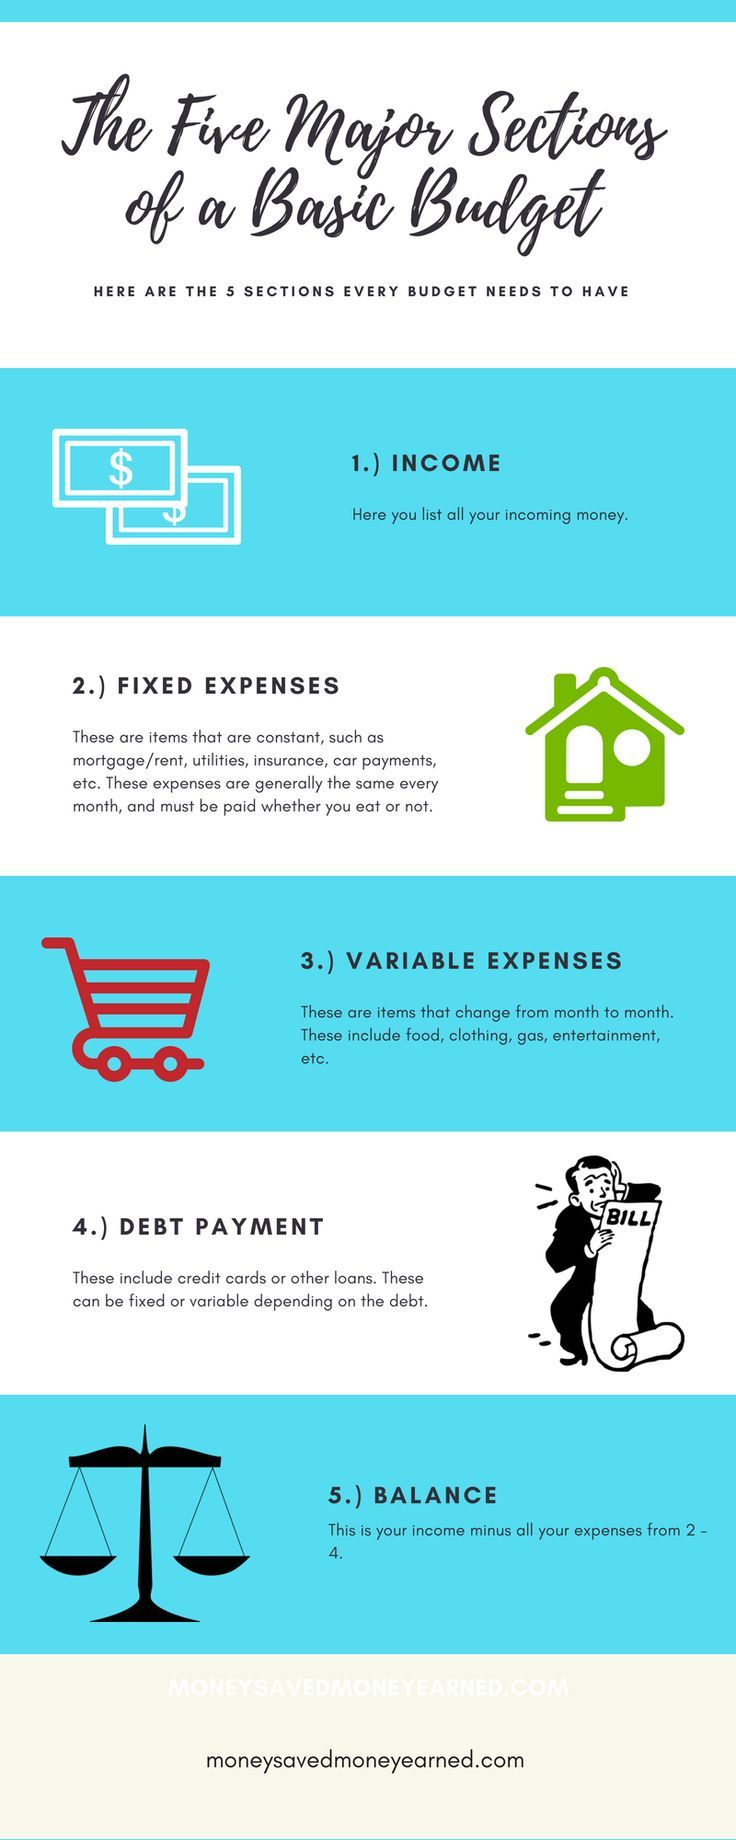 Why A Budget Is A Must For Fiscal Responsibility Money Saved Is Money Earned Budgeting Personal Finance Finance